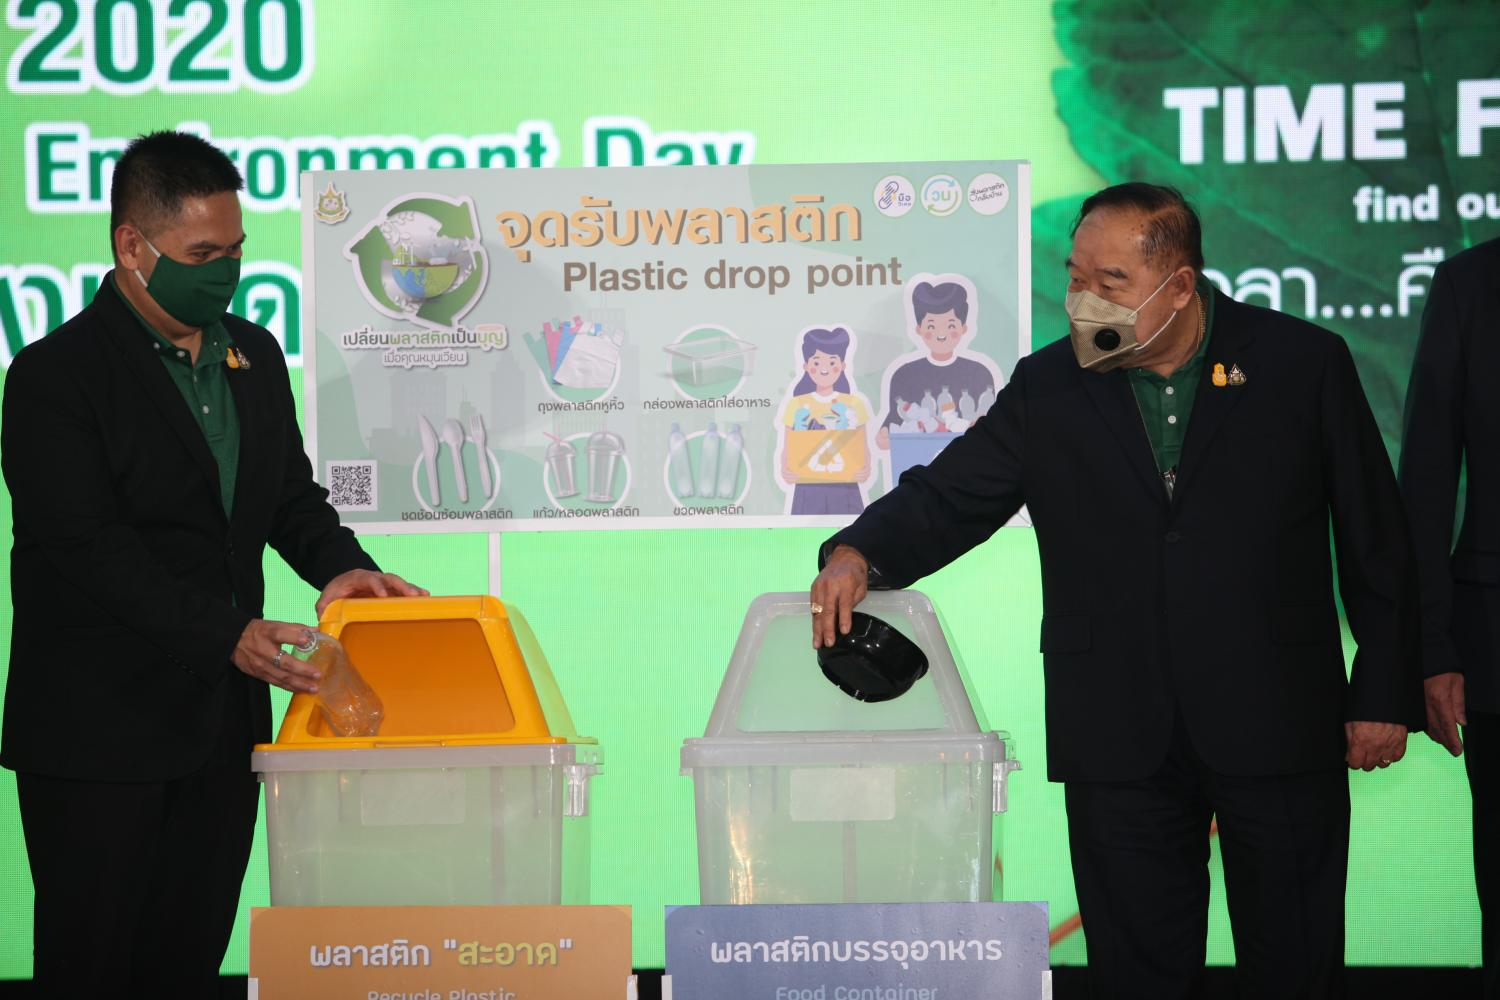 Deputy Prime Minister Prawit Wongsuwon (right) drops a plastic bowl into a recycling bin while presiding over an activity to mark World Environment Day at the Department of Environment Quality Promotion.(Photo by Apichart Jinakul)